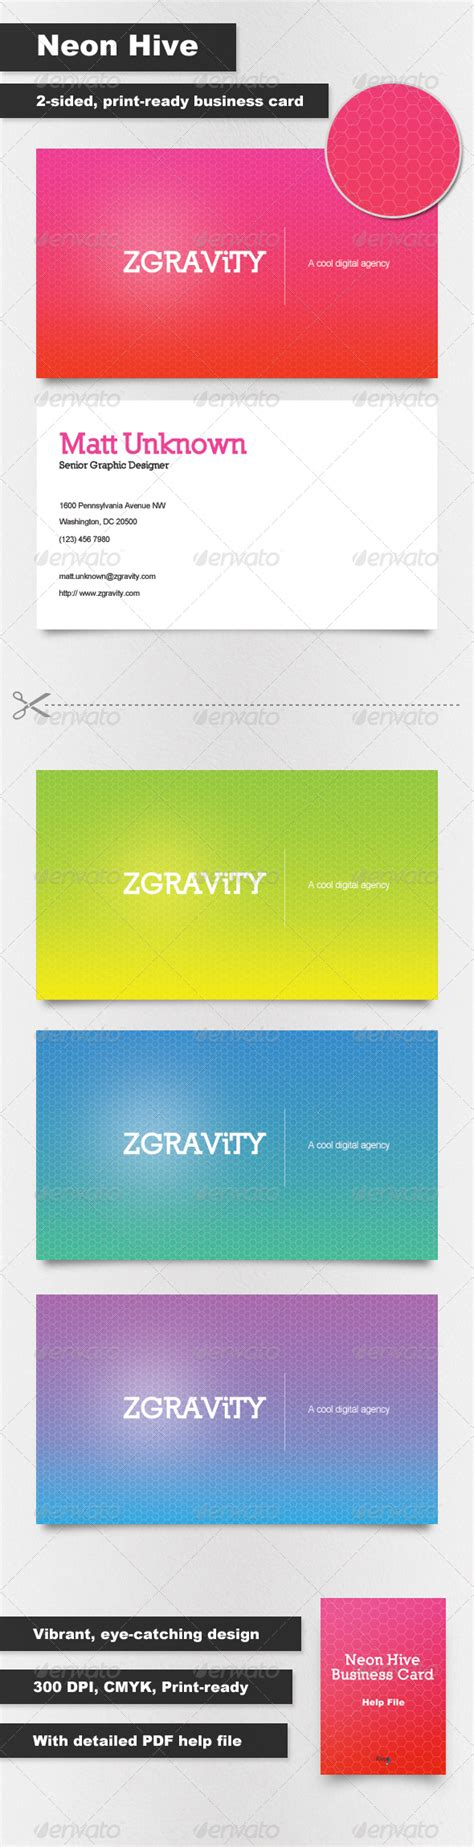 neon business cards templates neon yellow motorcycle 187 tinkytyler org stock photos